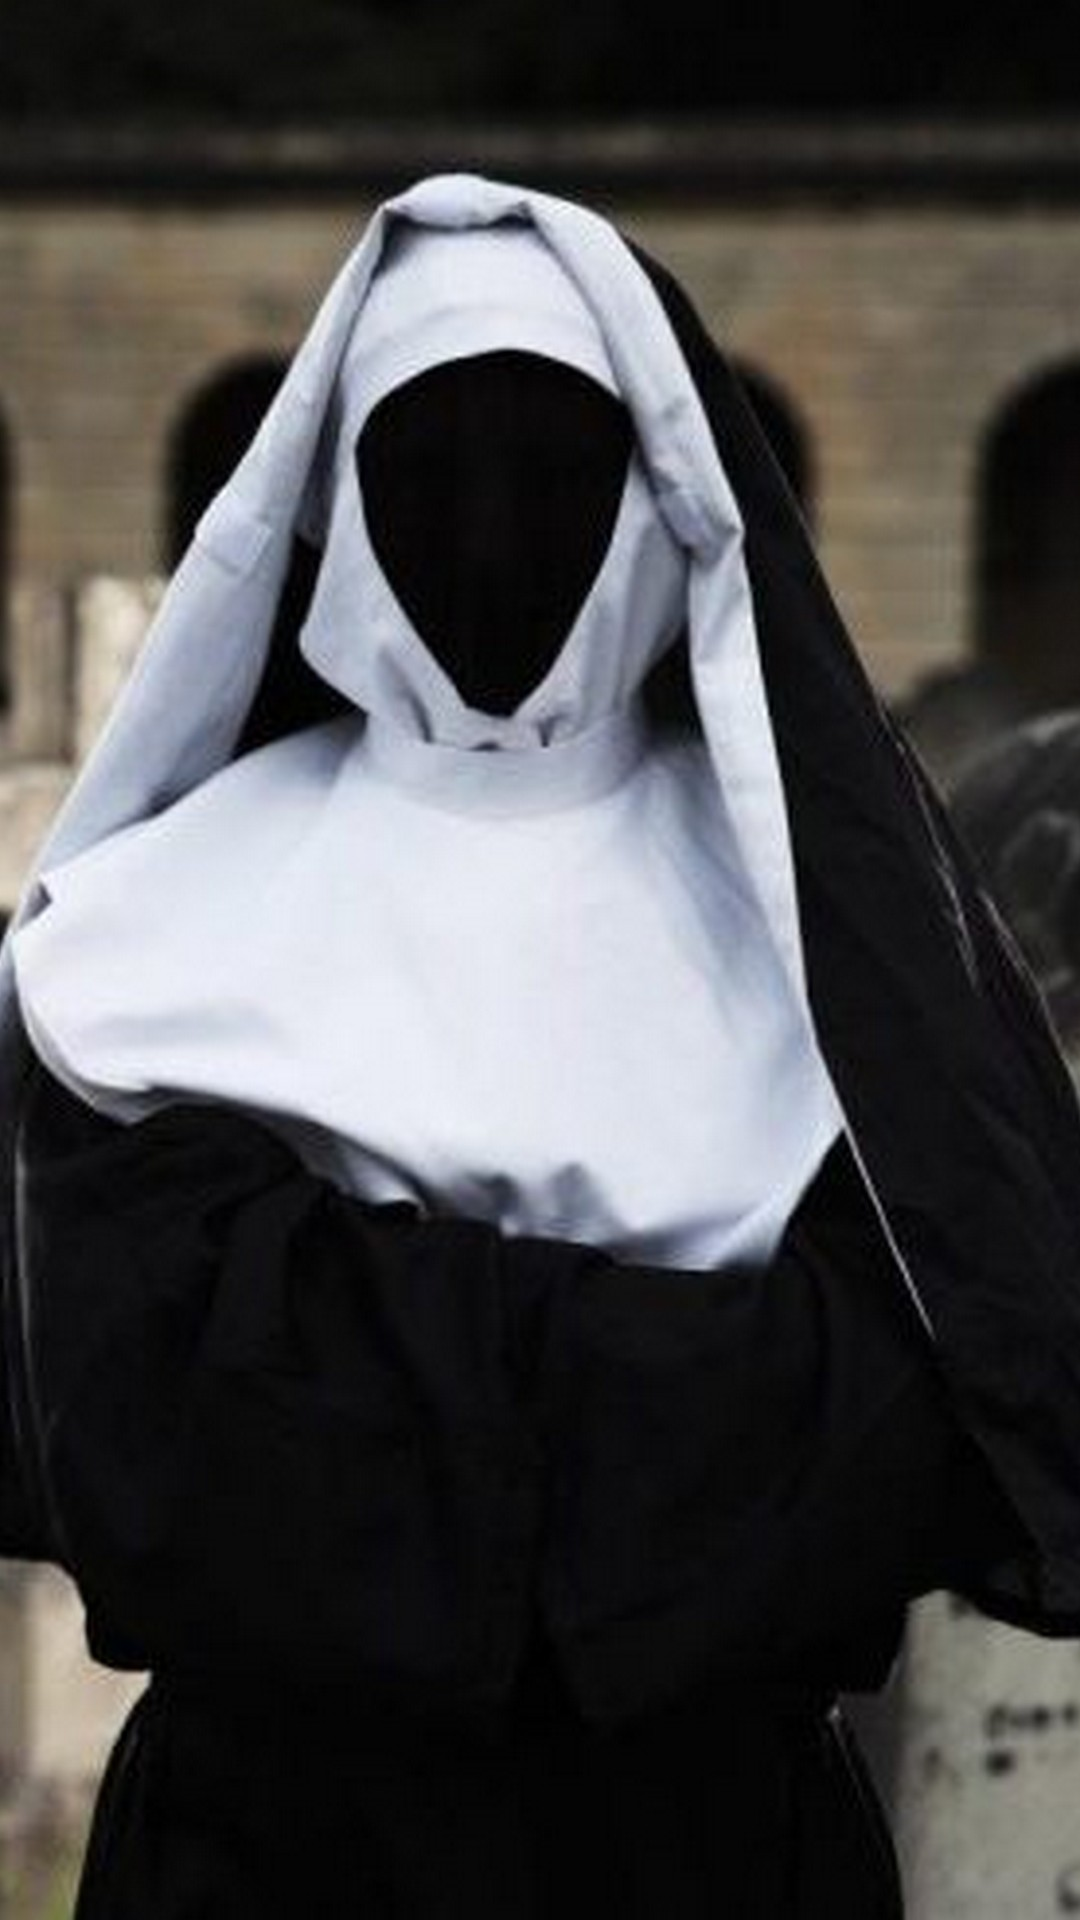 Wallpaper The Nun Movie Android